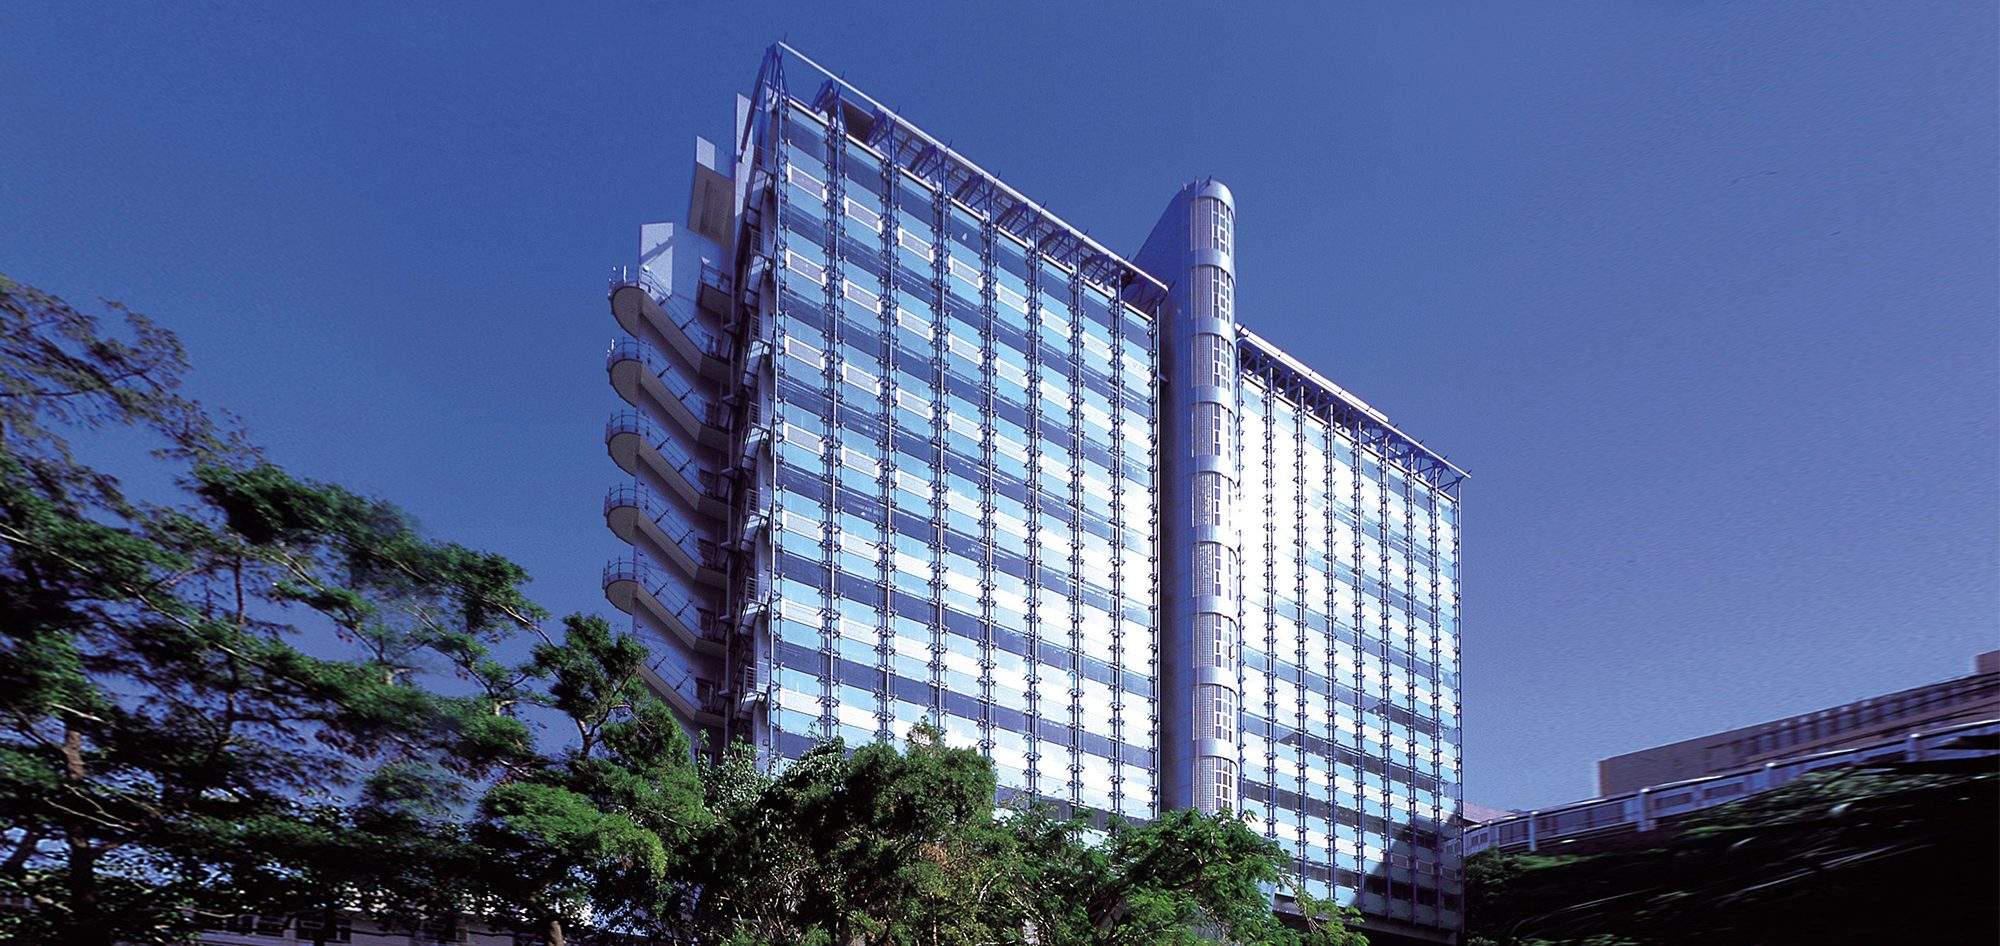 Kadoorie Biological Sciences Building, The University of Hong Kong